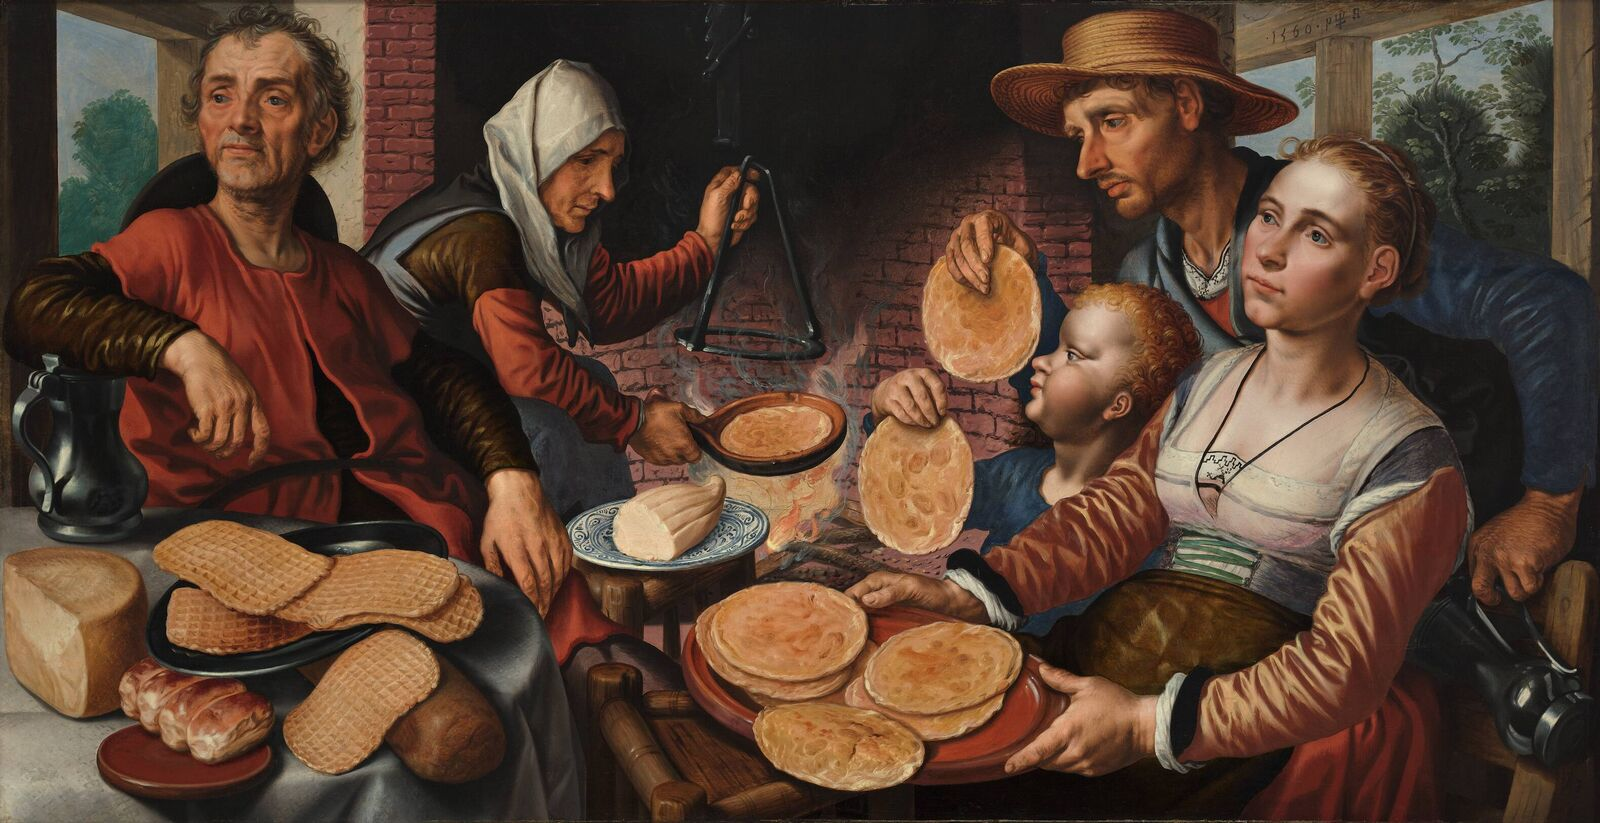 The Pancake Bakery by Pieter Aertsen (circa 1508–1575)